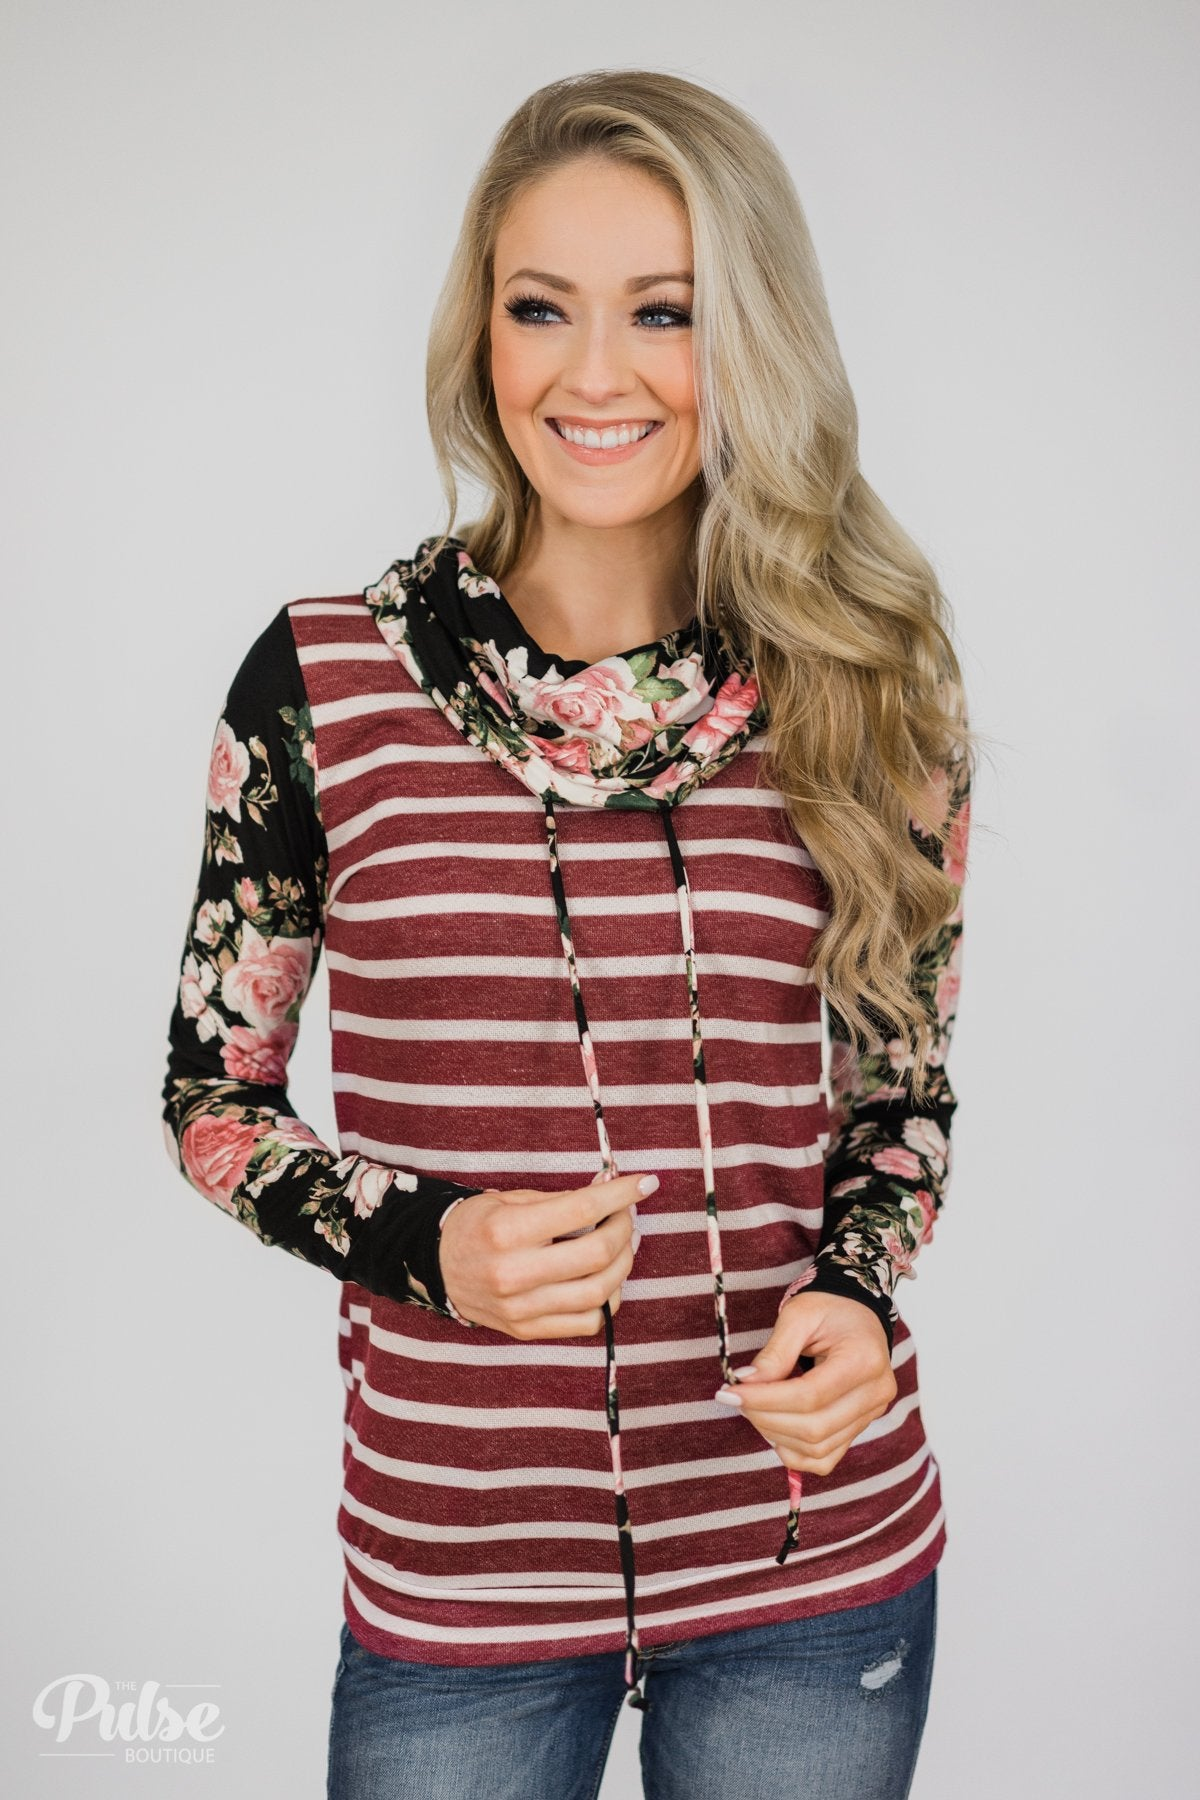 dc131e57be06 Pure Beauty Floral & Striped Cowl Neck Top- Black & Burgundy